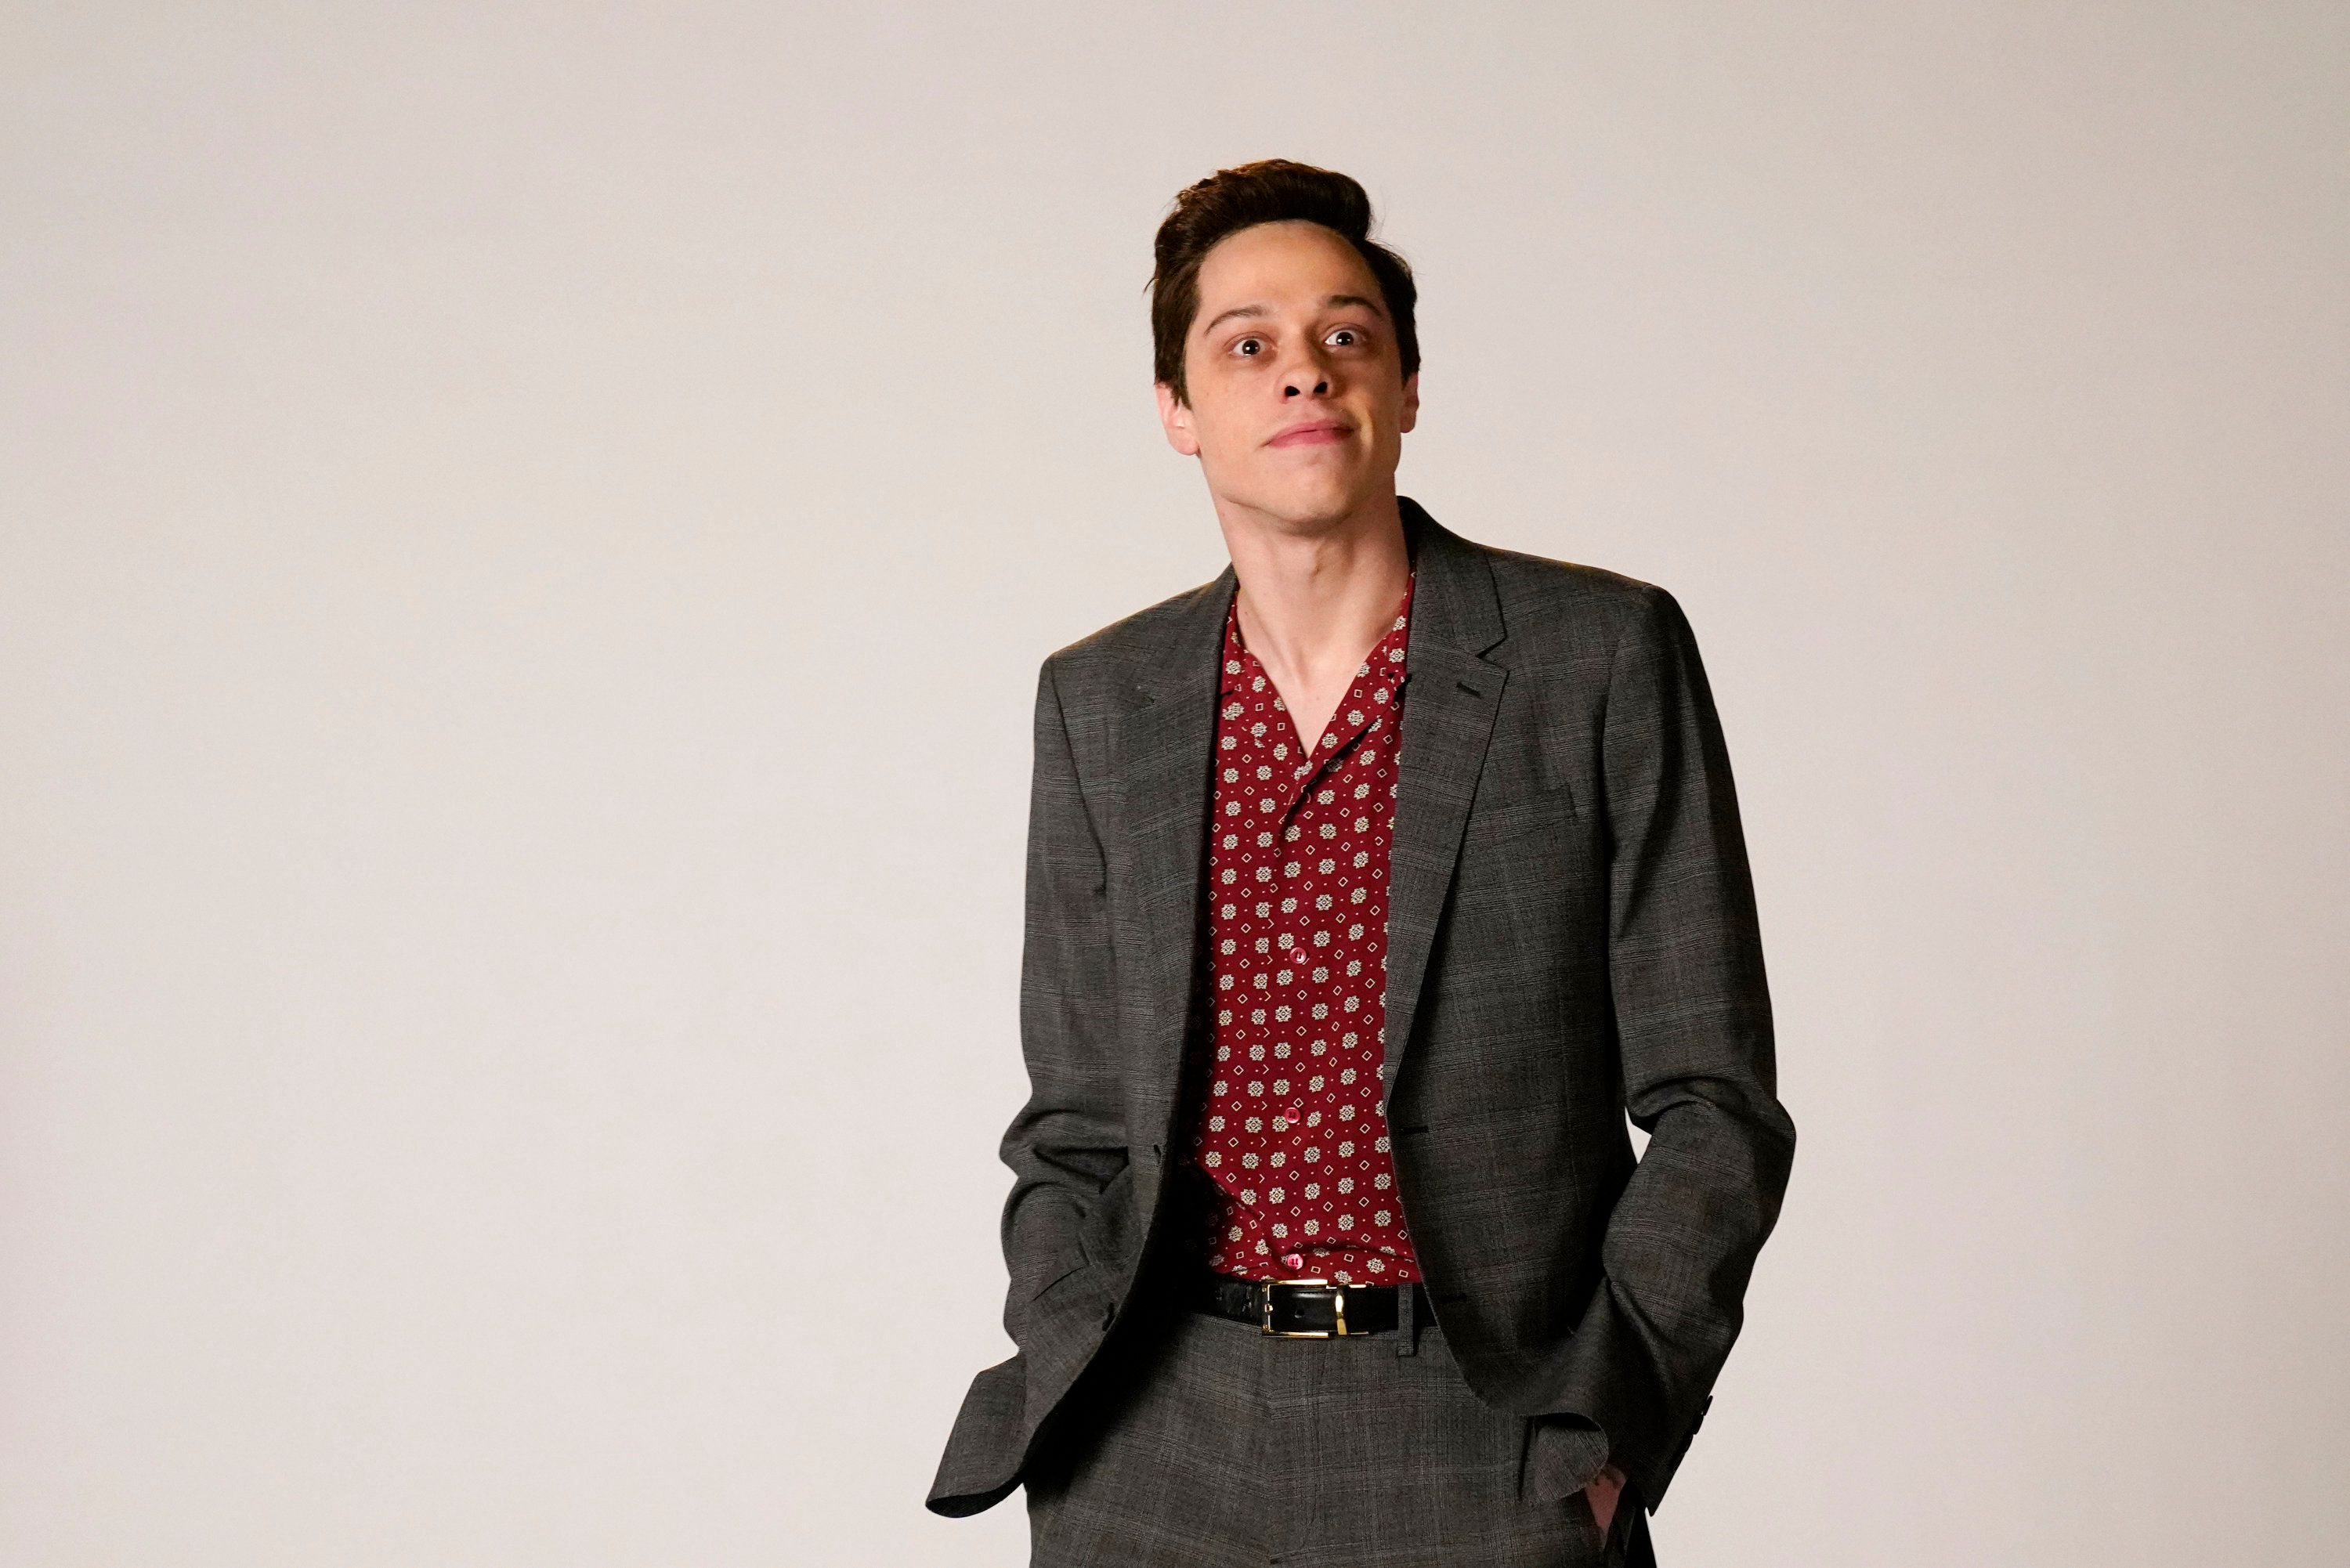 SATURDAY NIGHT LIVE -- 'Matt Damon' Episode 1755 -- Pictured: Pete Davidson as Rami Malek during the 'Oscar Host Auditions' sketch on Saturday, December 15, 2018 -- (Photo by: Ava Williams/NBC/NBCU Photobank)